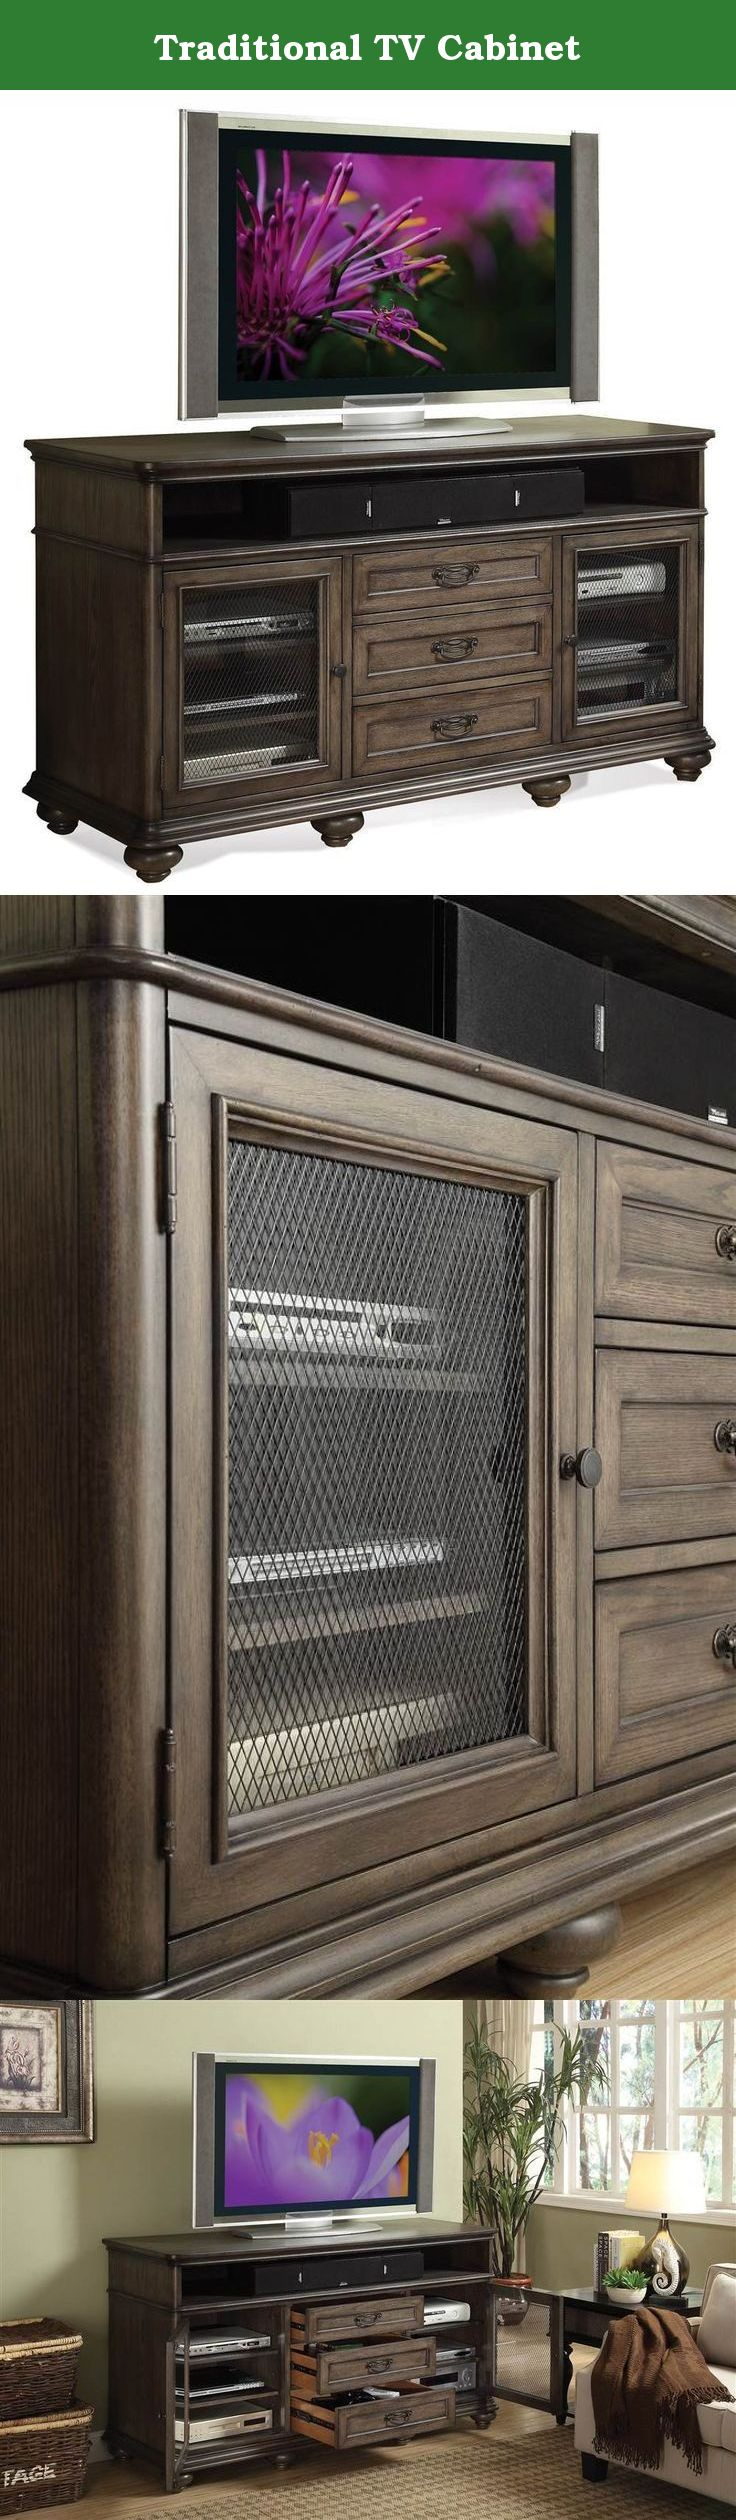 Traditional TV Two top open storage areas. Two